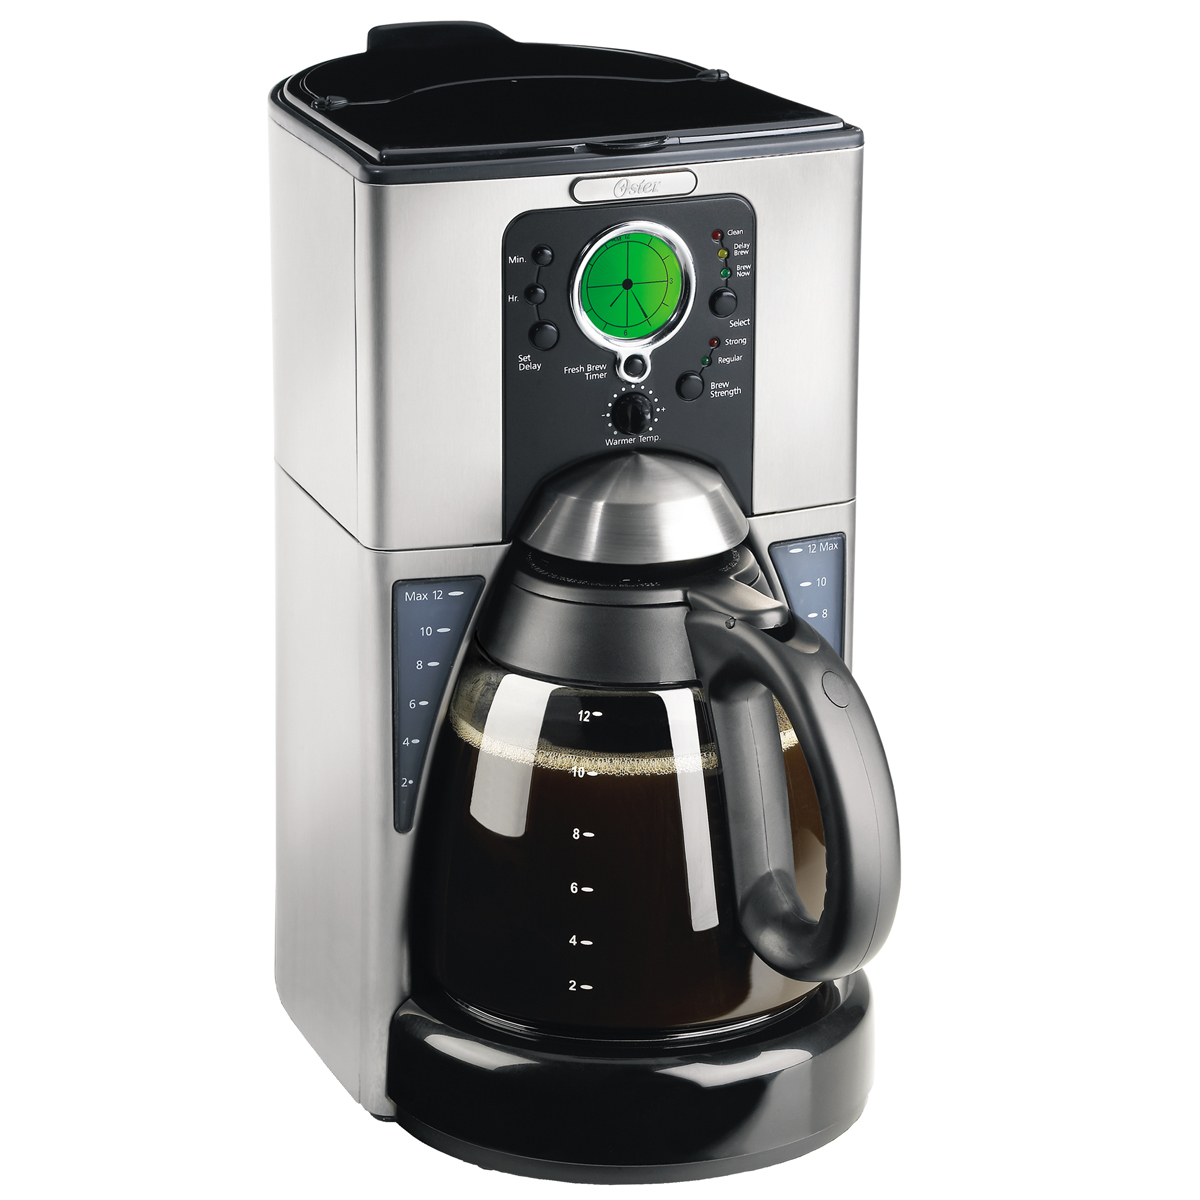 Oster 12-cup Programmable Coffee Maker 7988-33 Parts Oster Canada